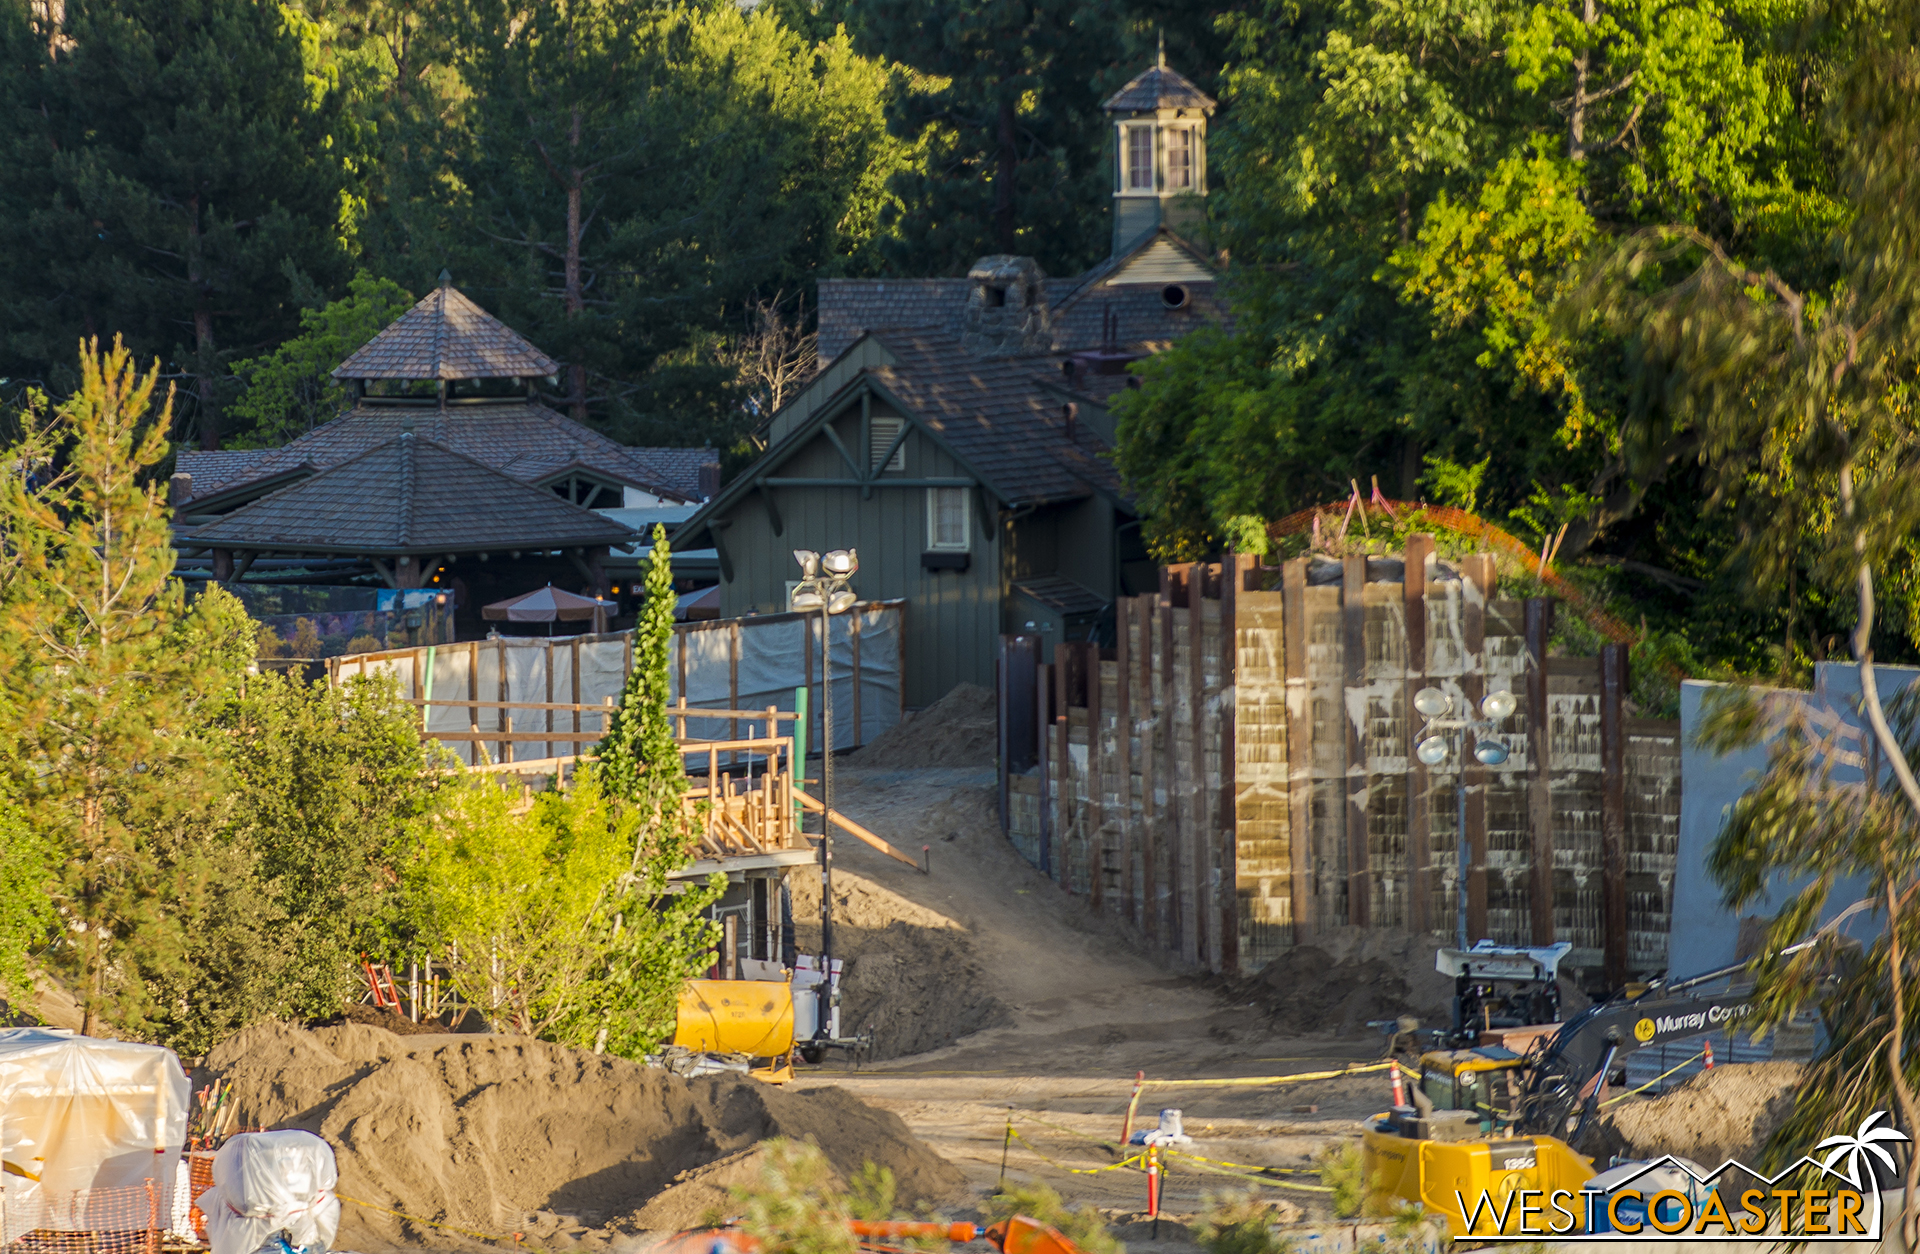 It's the wood framing just in front of and to the left of the green pipe in the middle.  And under that is the dirt that will ultimately become the pathway coming from along the bank of the Rivers of America and just beside the Hungry Bear eating area.